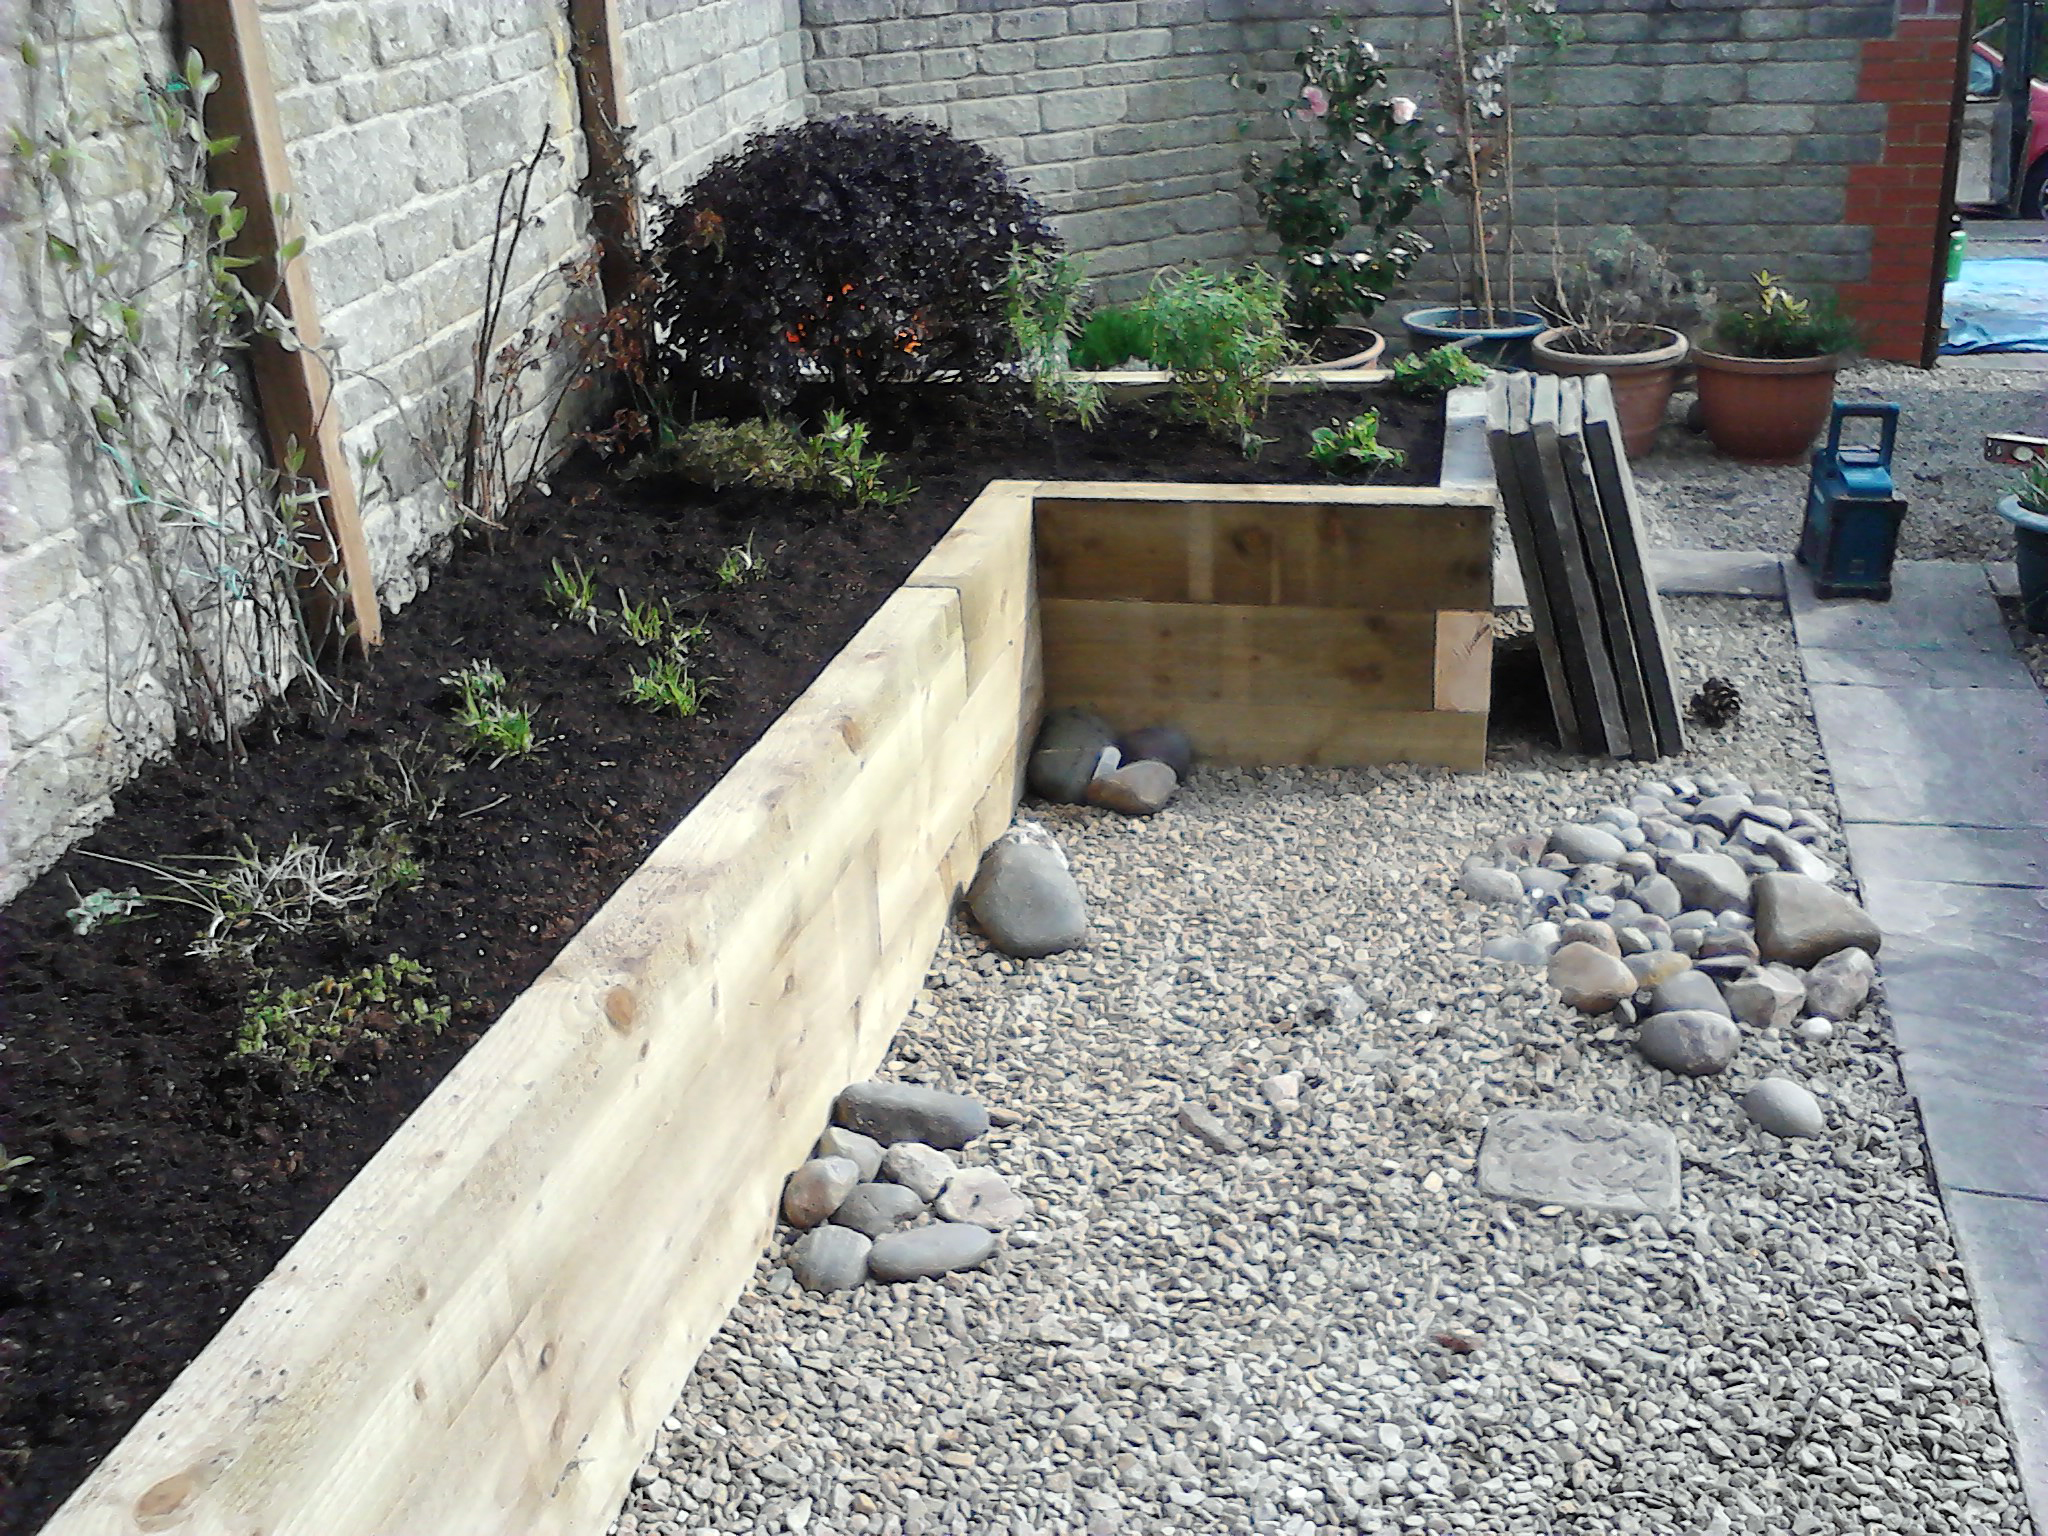 Railway sleepers as garden features j b lanscapes for Garden pond design using sleepers